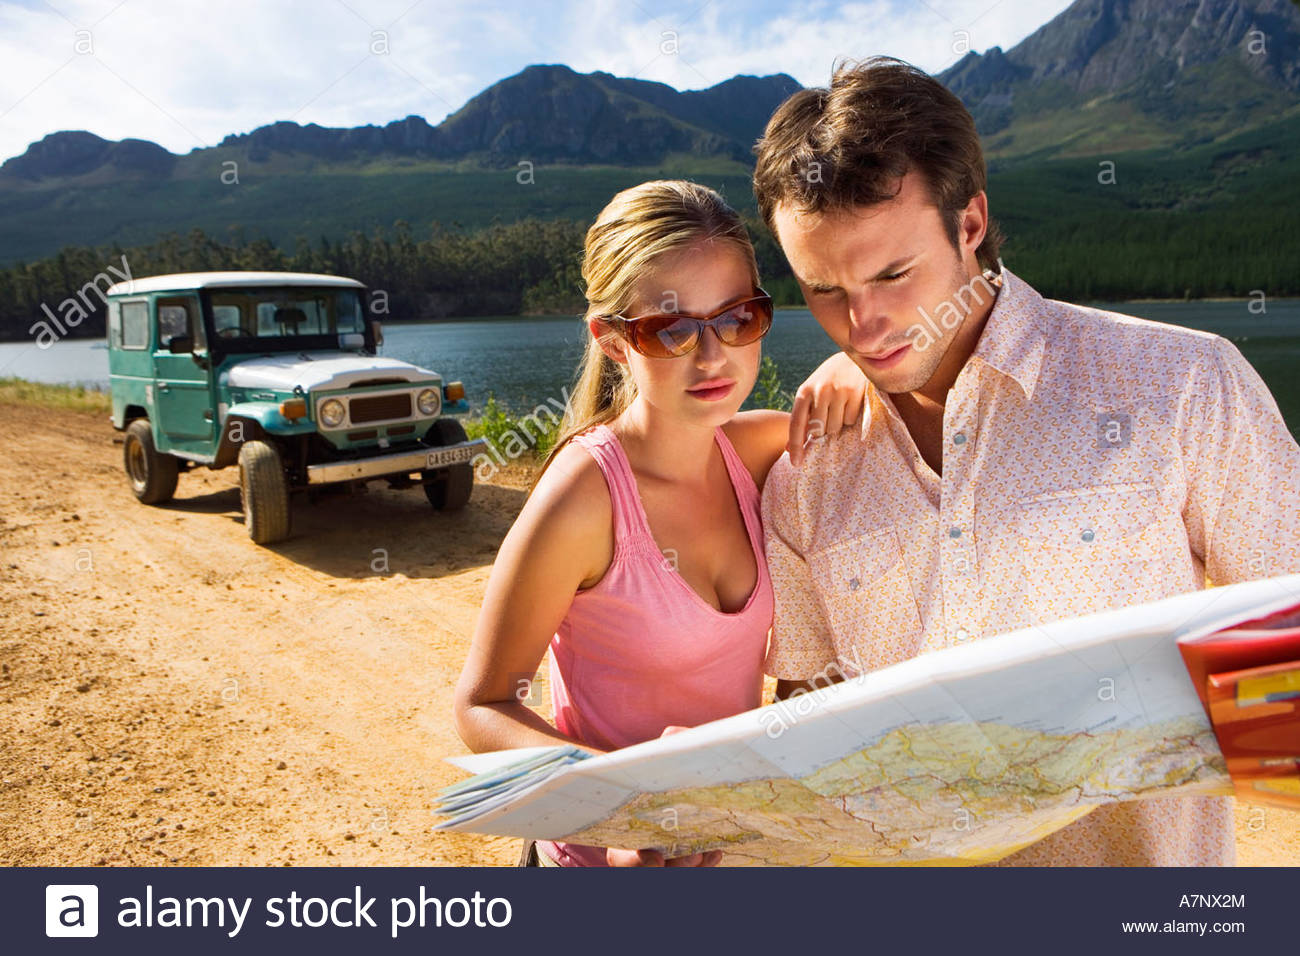 Young couple standing near parked jeep on dirt track beside lake consulting map - Stock Image